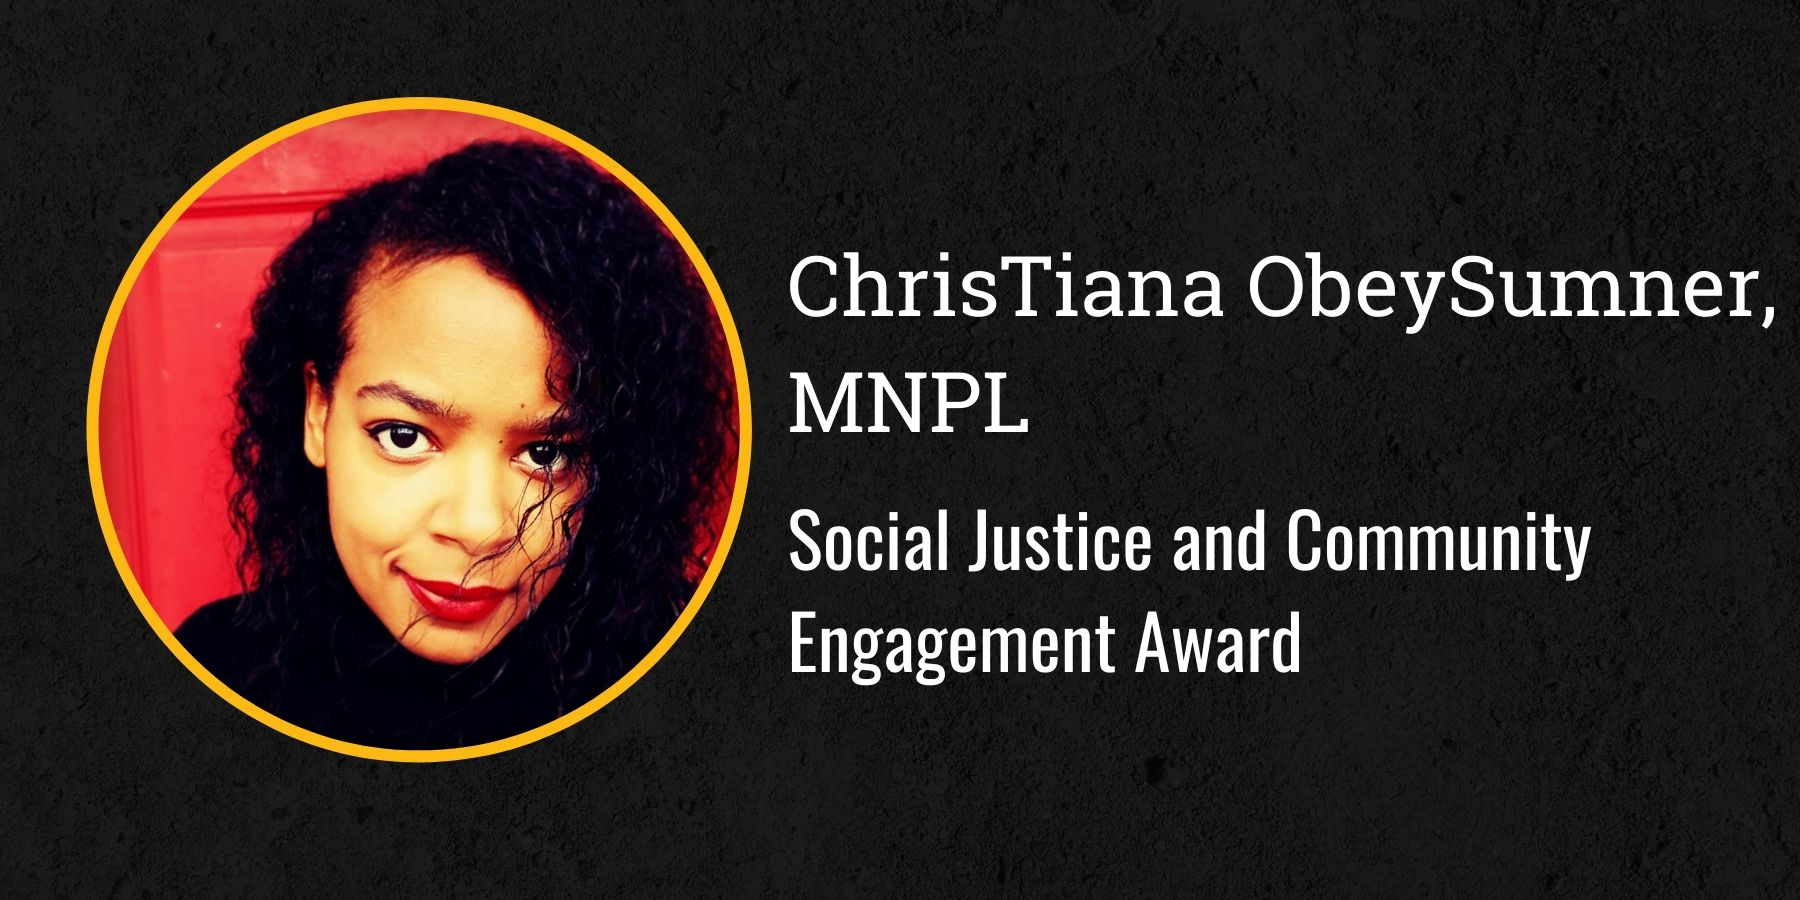 Photo of ChrisTiane ObeySumner and text Social Justice and Community Engagement Award